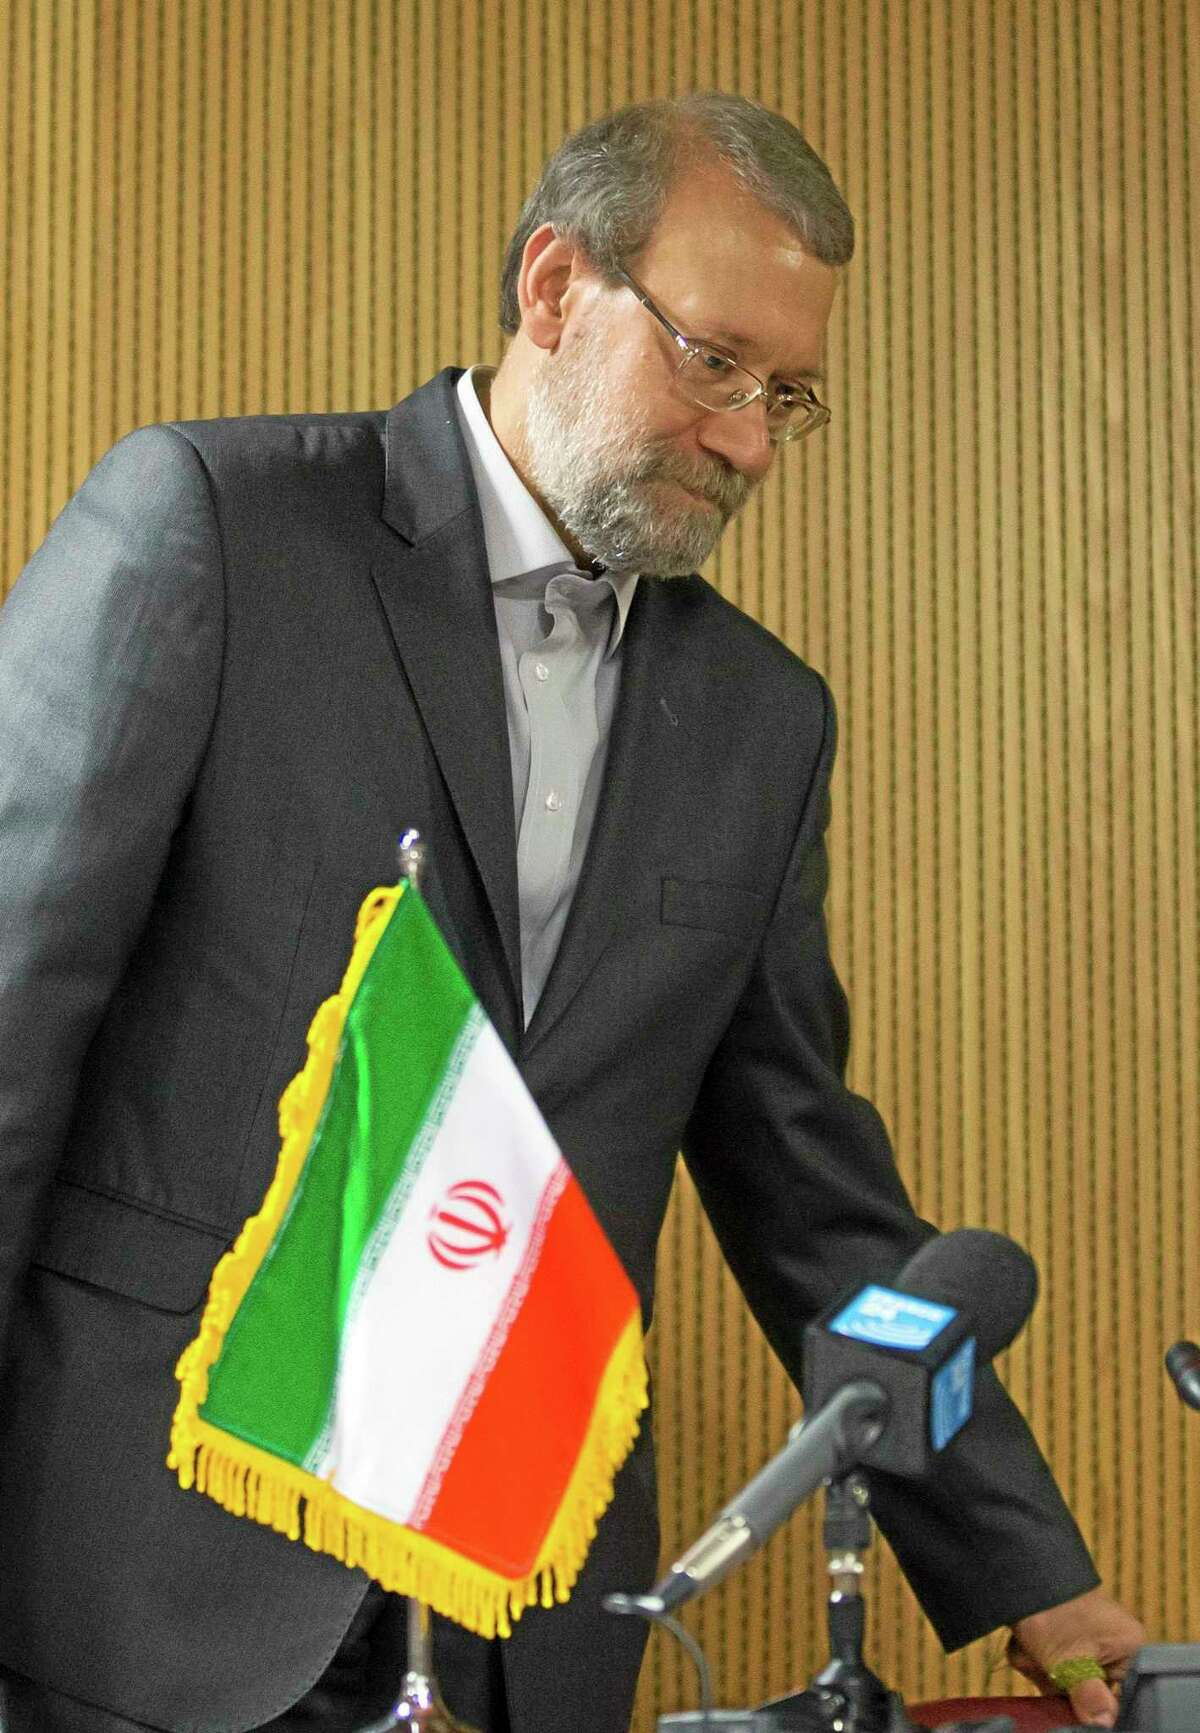 Iran's Parliament speaker Ali Larijani arrives for a press conference on the sidelines of the 129th Assembly of the Inter-Parliamentary Union (IPU), in Geneva, Switzerland, Wednesday, Oct. 9, 2013. (AP Photo/Keystone, Salvatore Di Nolfi)